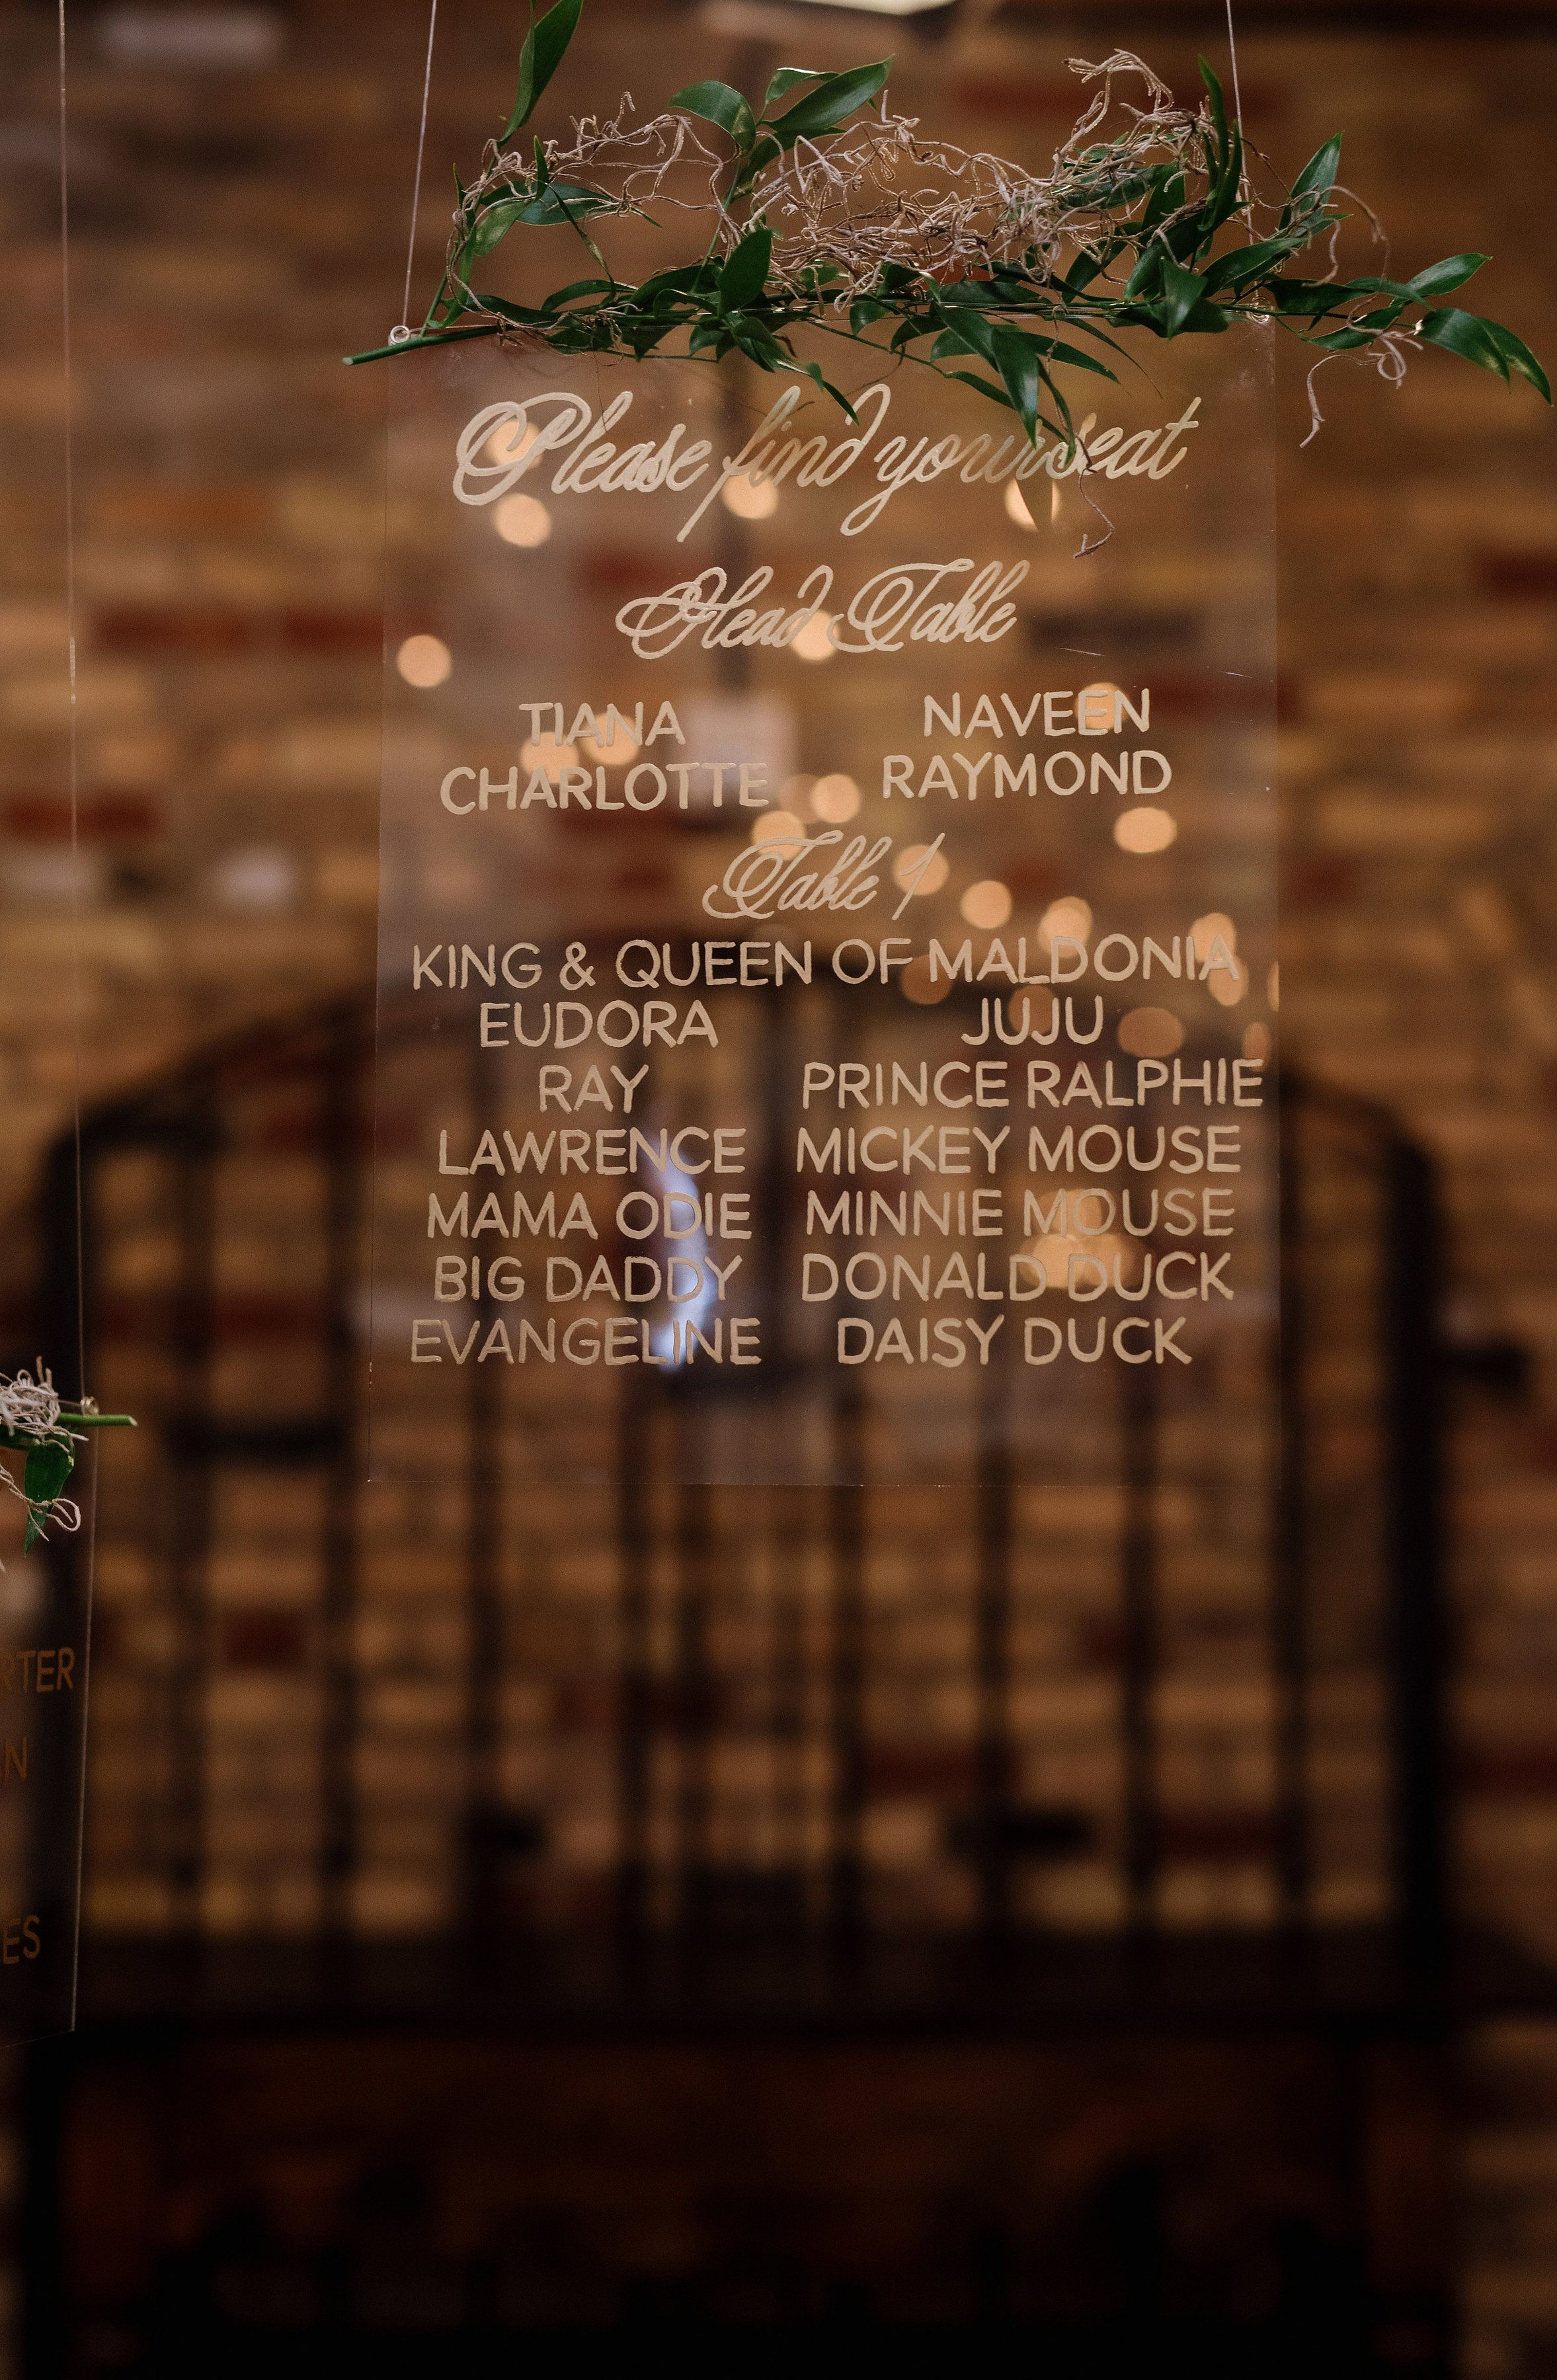 Dreamy hanging acrylic seating chart with lush greenery and gold calligraphy and hand lettering The